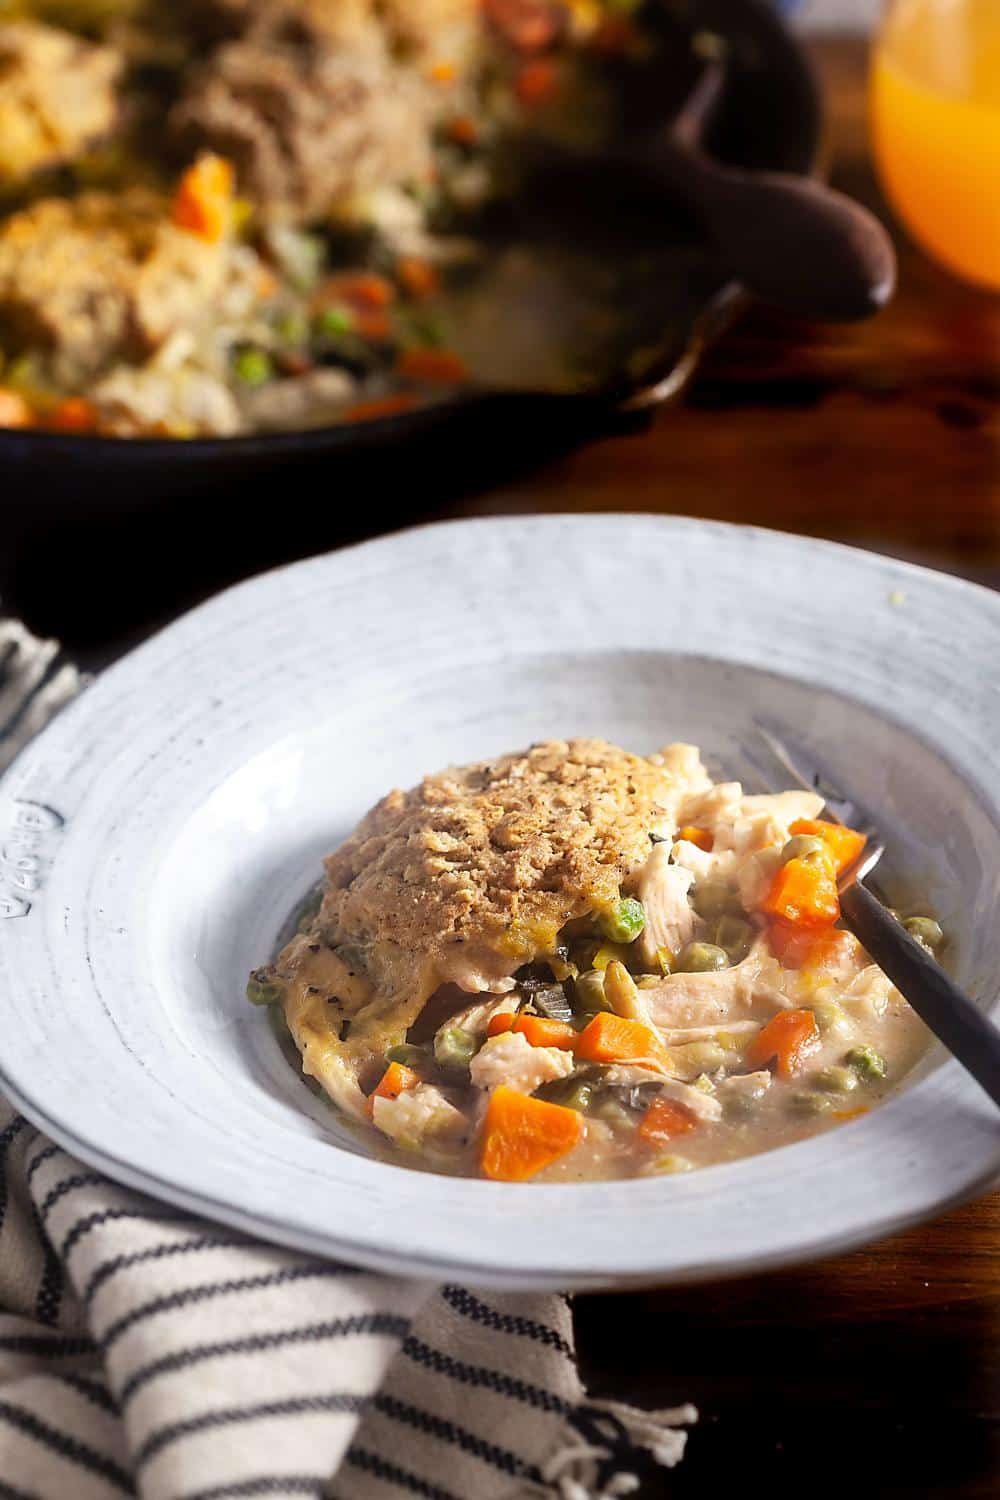 gluten-free chicken pot pie in a bowl